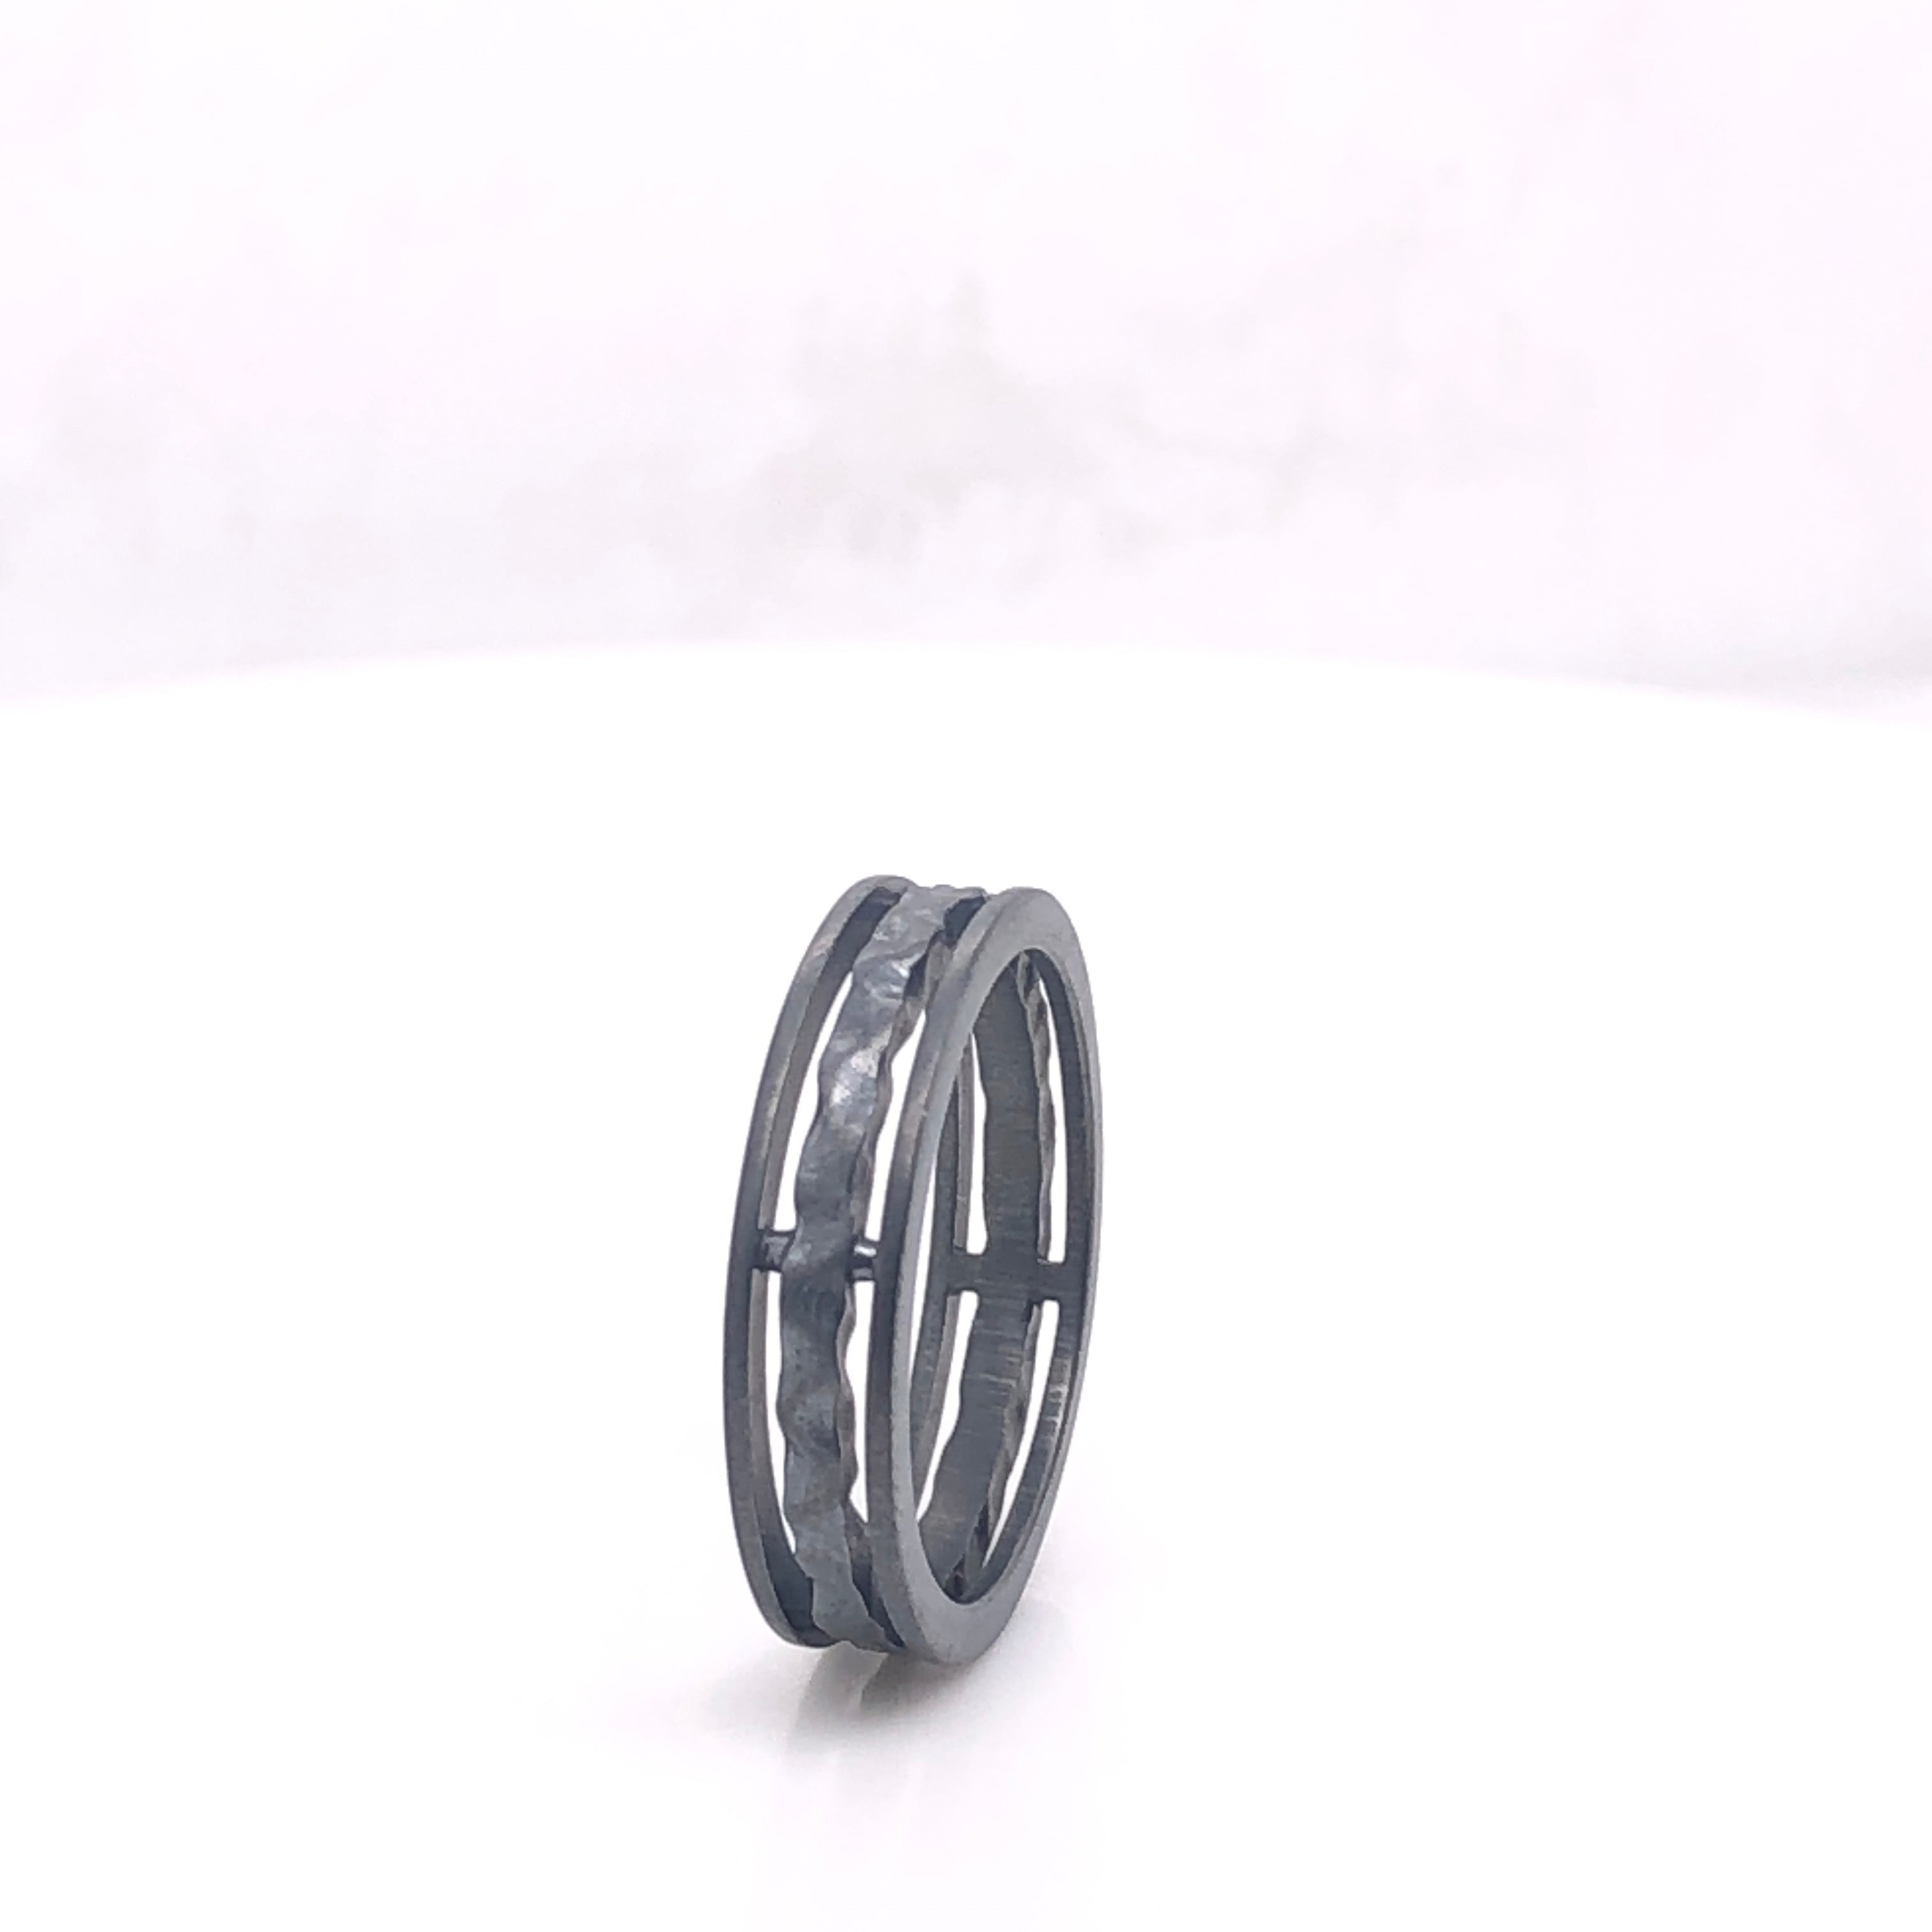 Oxidized Sterling Silver Hammered Ring, sydney strong, greenville, south carolina